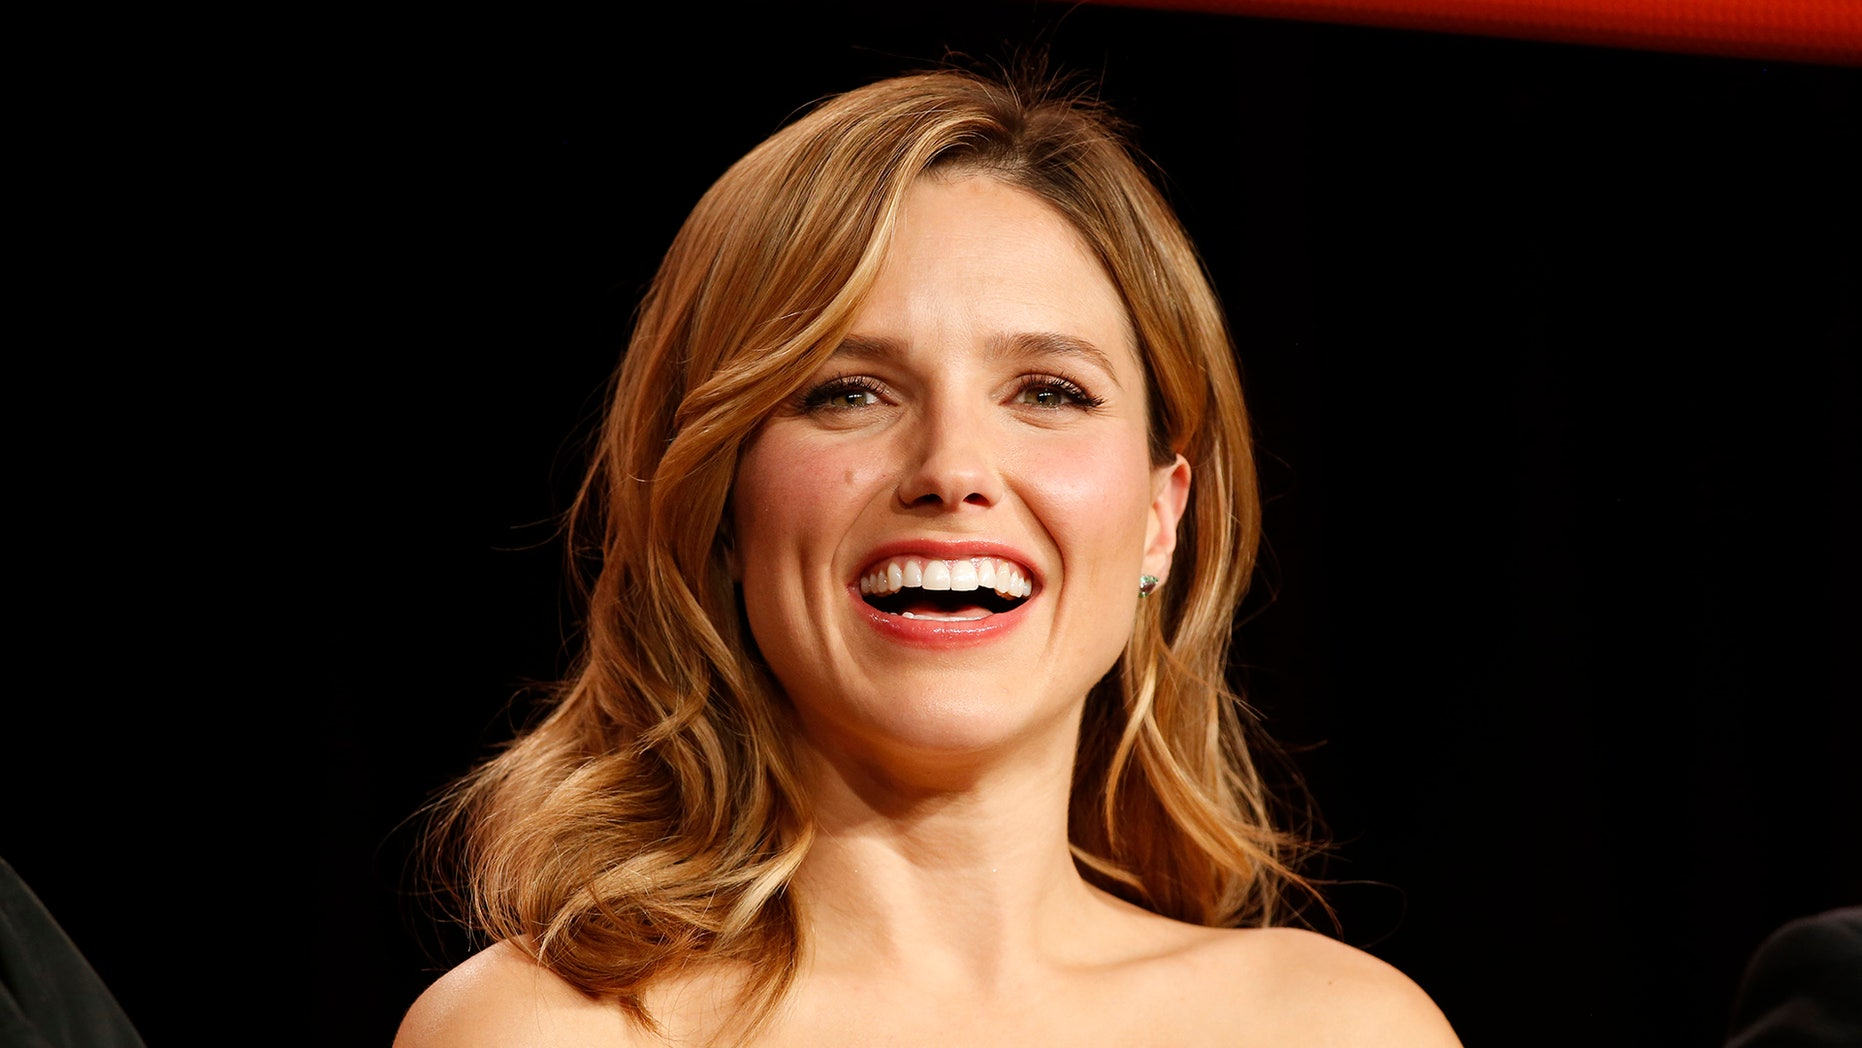 """Actor Sophia Bush speaks about the NBC television show """"Chicago Fire""""/""""Chicago P.D."""" during the TCA presentations in Pasadena, California, January 16, 2015."""